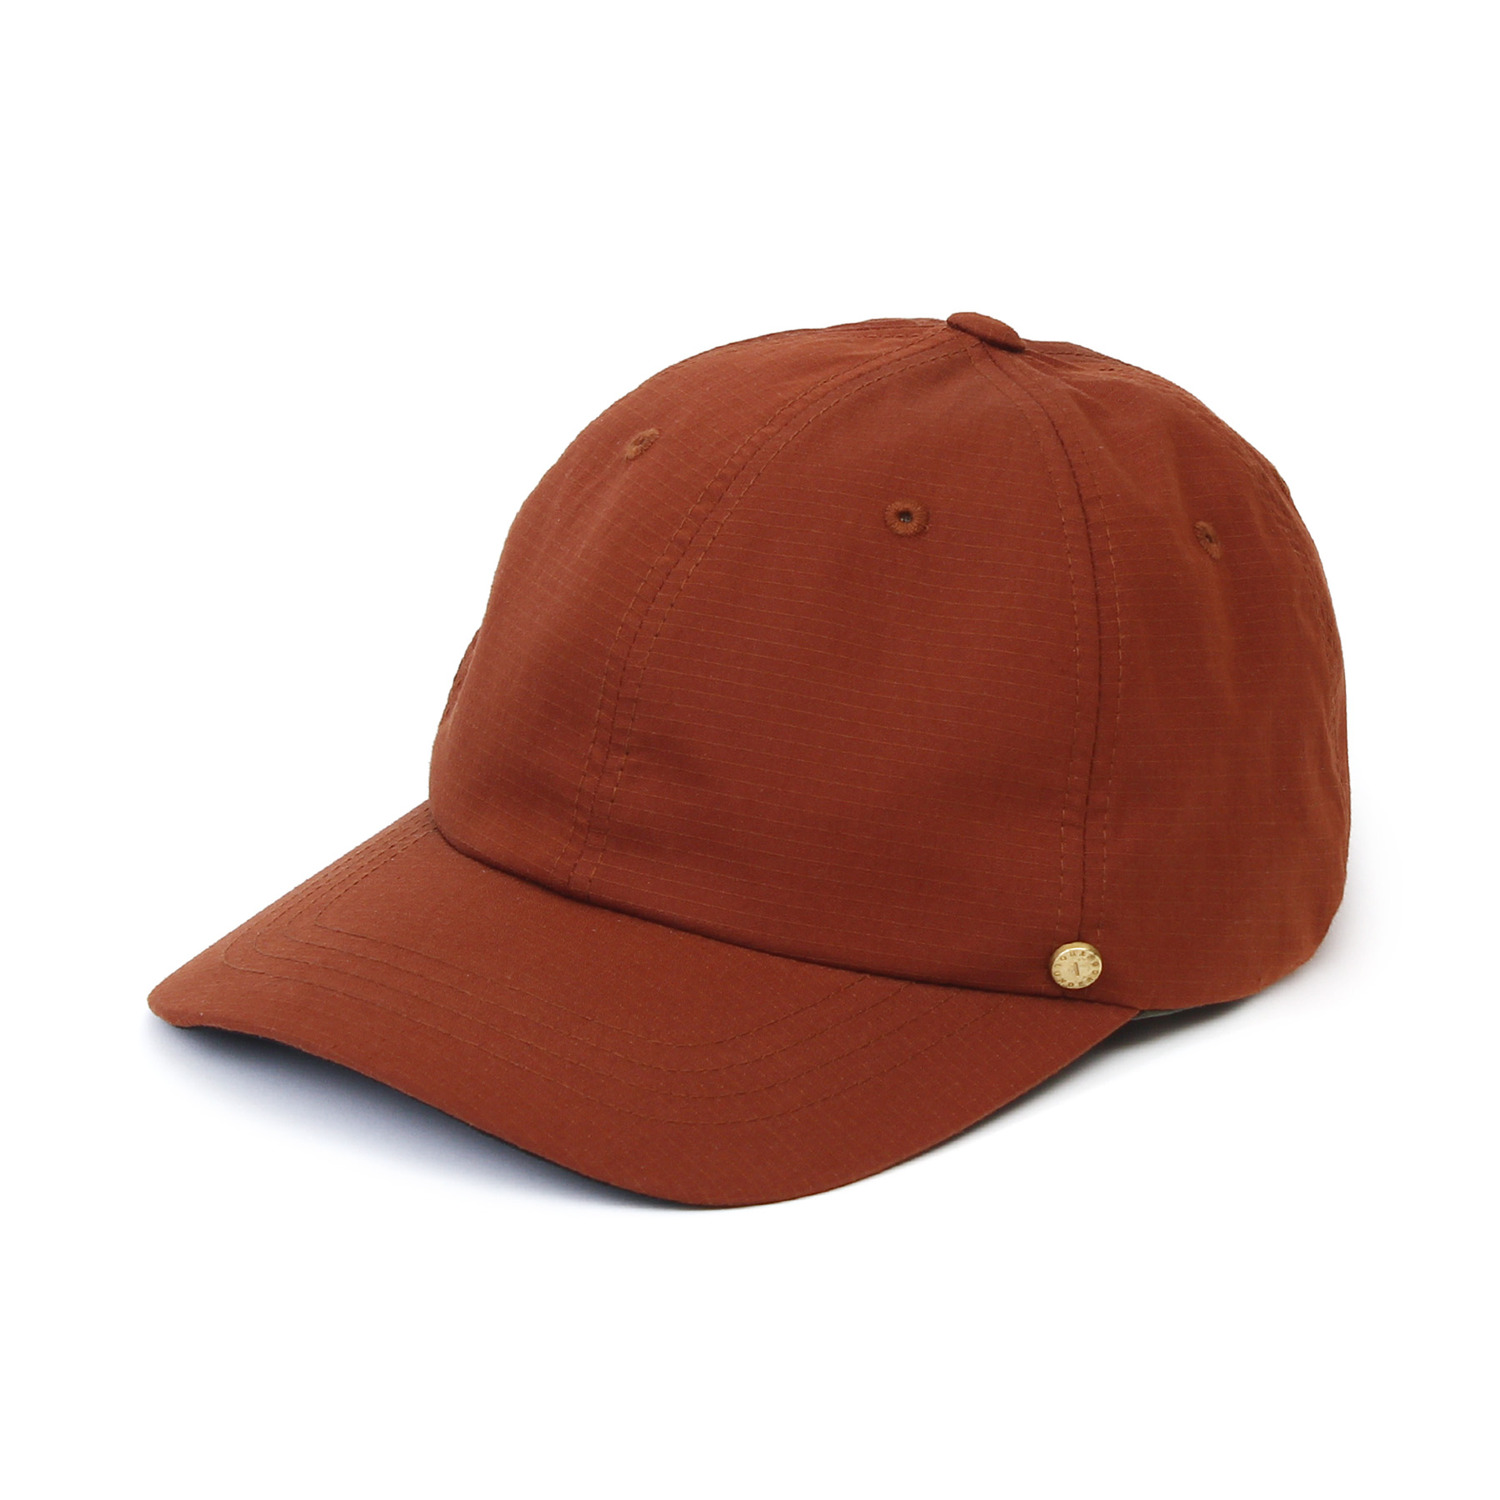 6PANNEL BALL CAP / CN RIP / BRICK